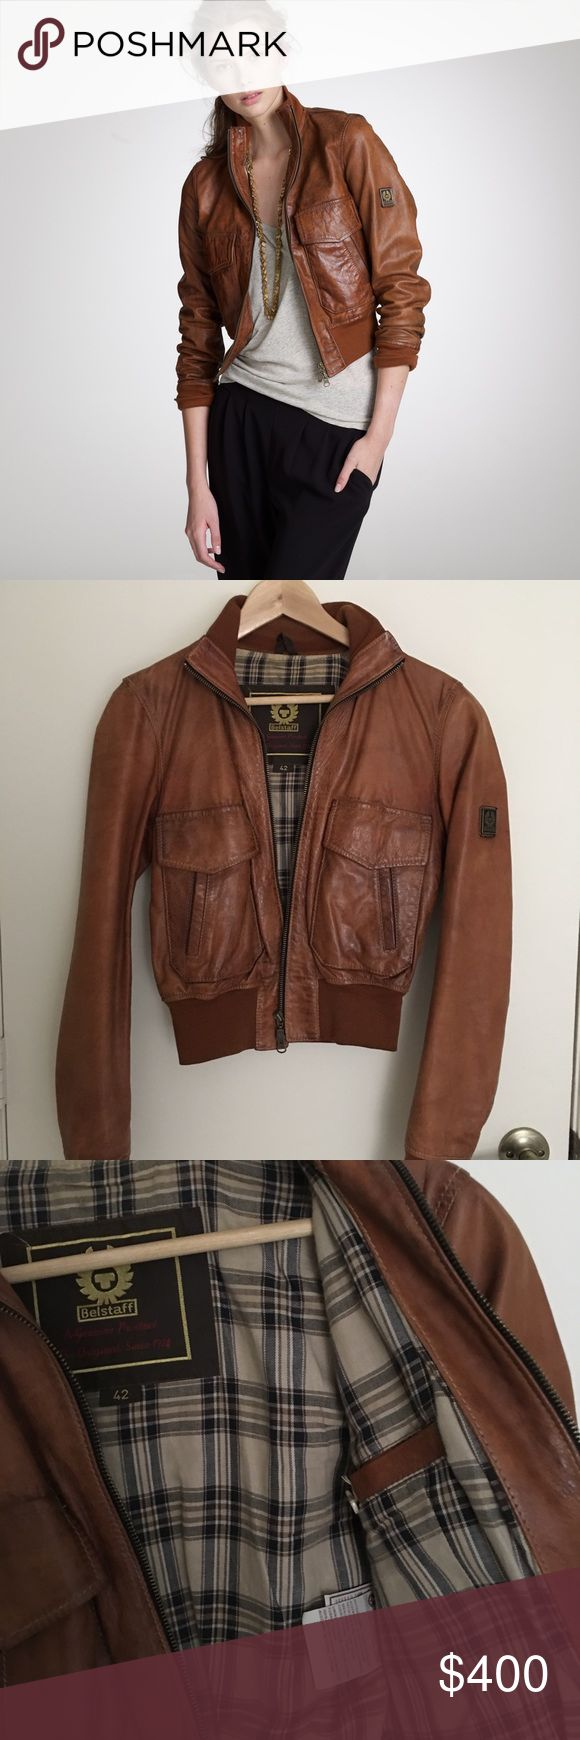 Leather Belstaff Jacket This jacket has been seldom worn but much loved. Unfortunately it's a bit to small for me now. I would say that it fits like a US size 2 or XS and is in perfect condition Belstaff Jackets & Coats